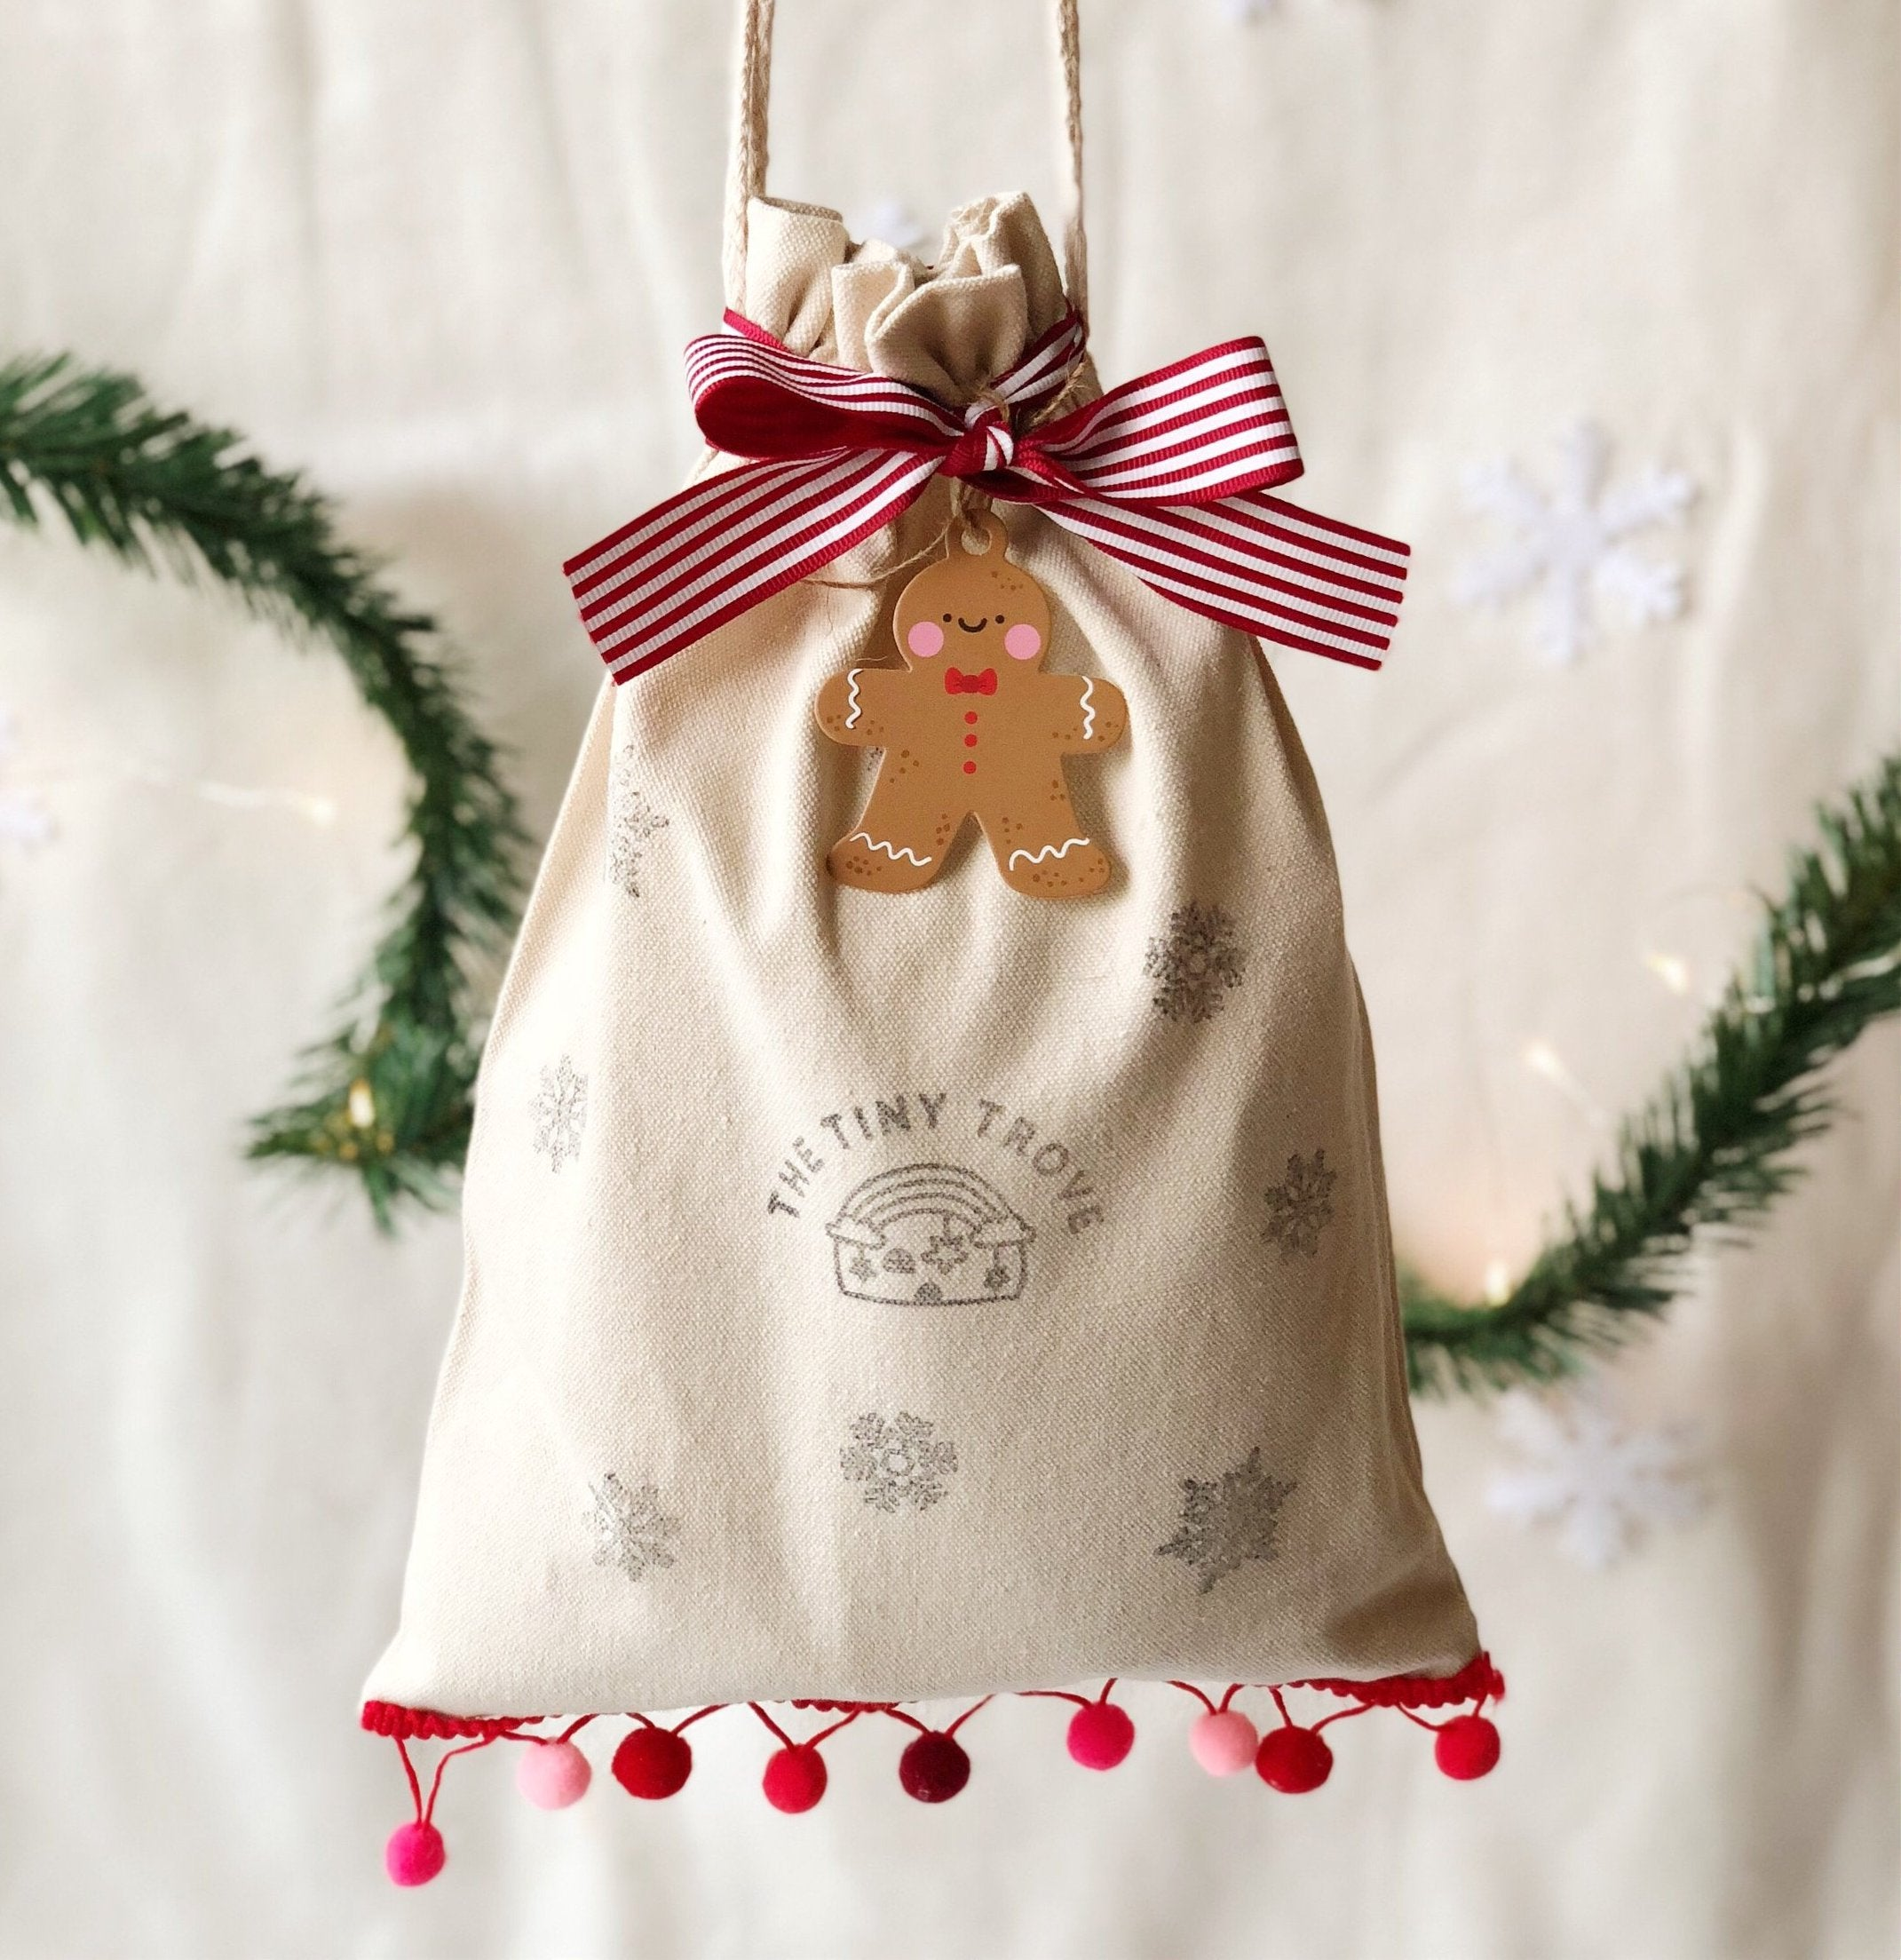 The Tiny Trove Christmas Canvas Sack (Gift Packing)